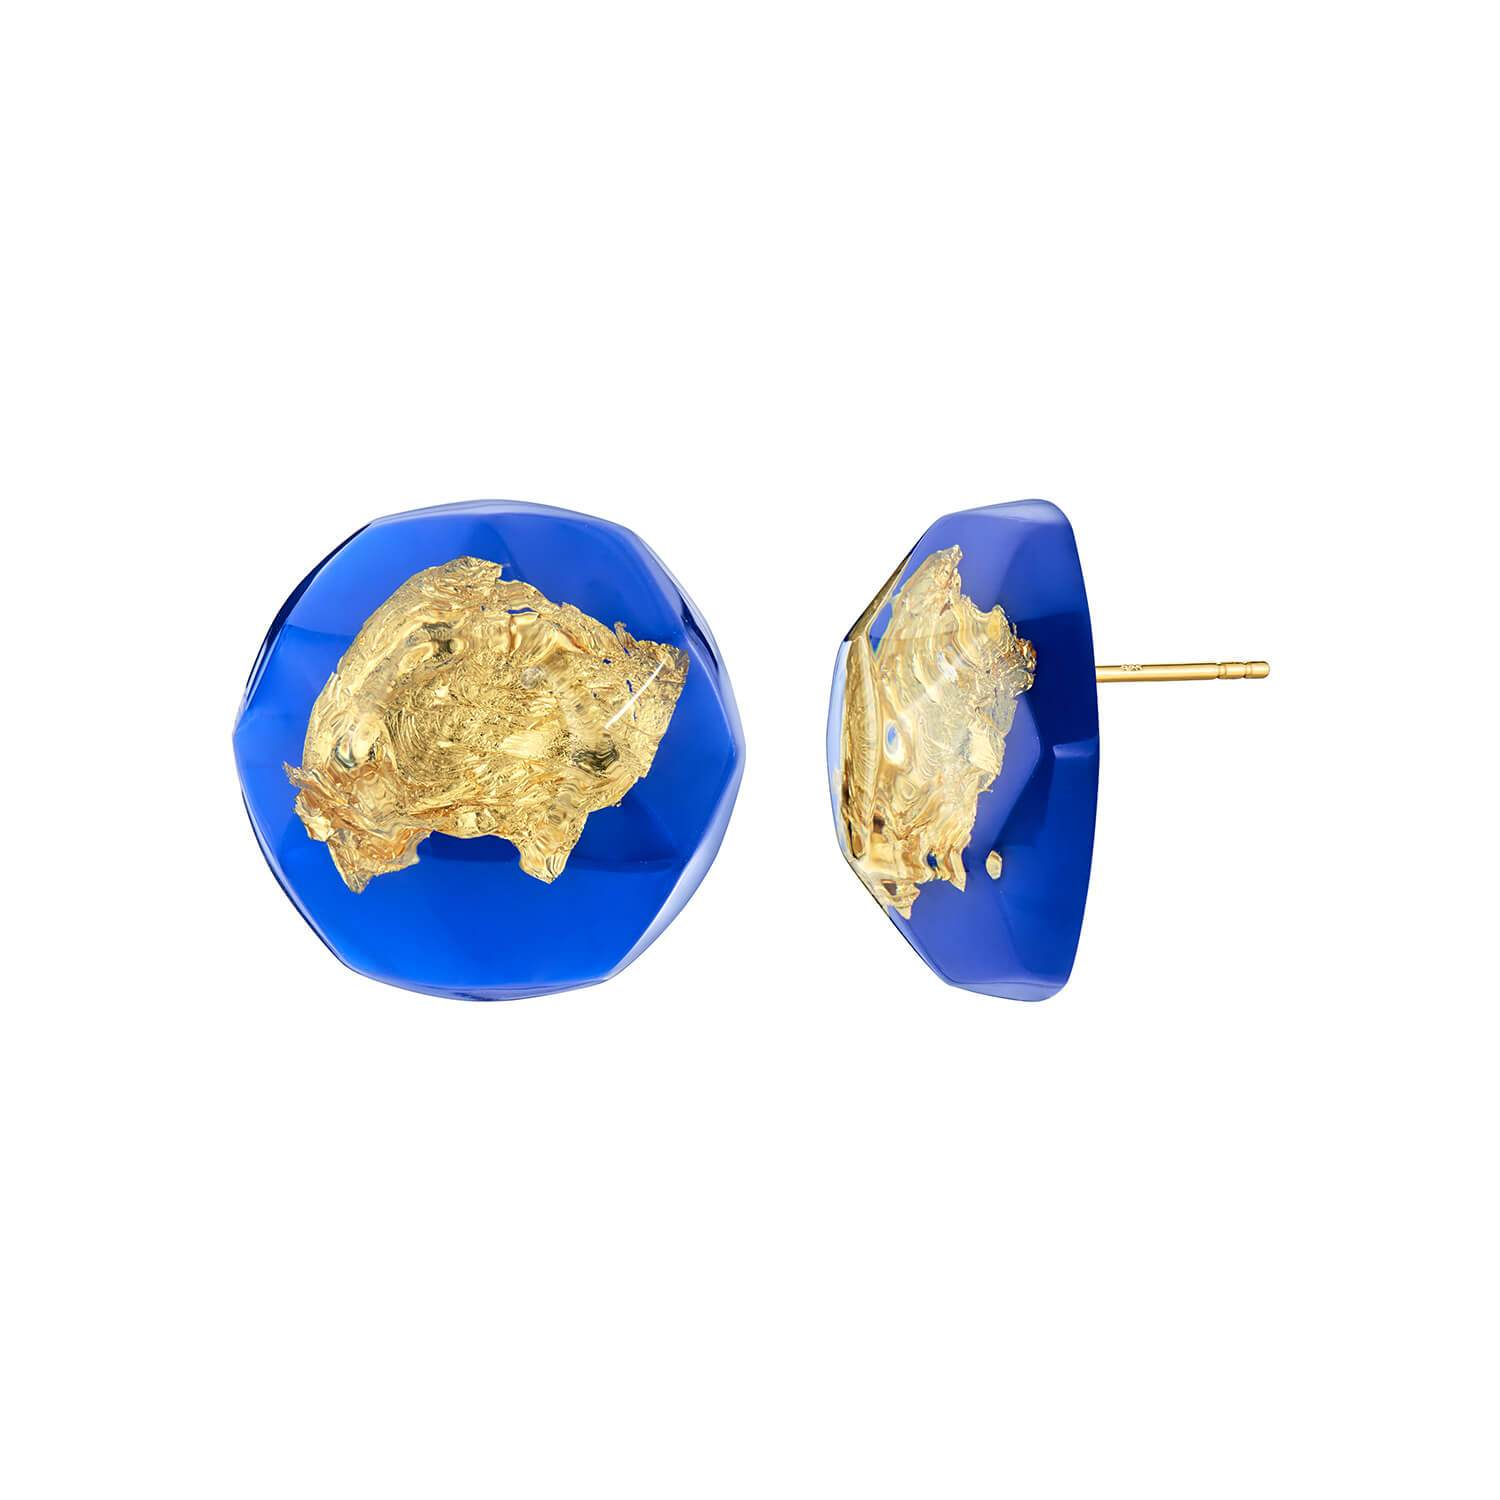 24K Gold Leaf Button Stud Earrings <br> (More Colors Available)